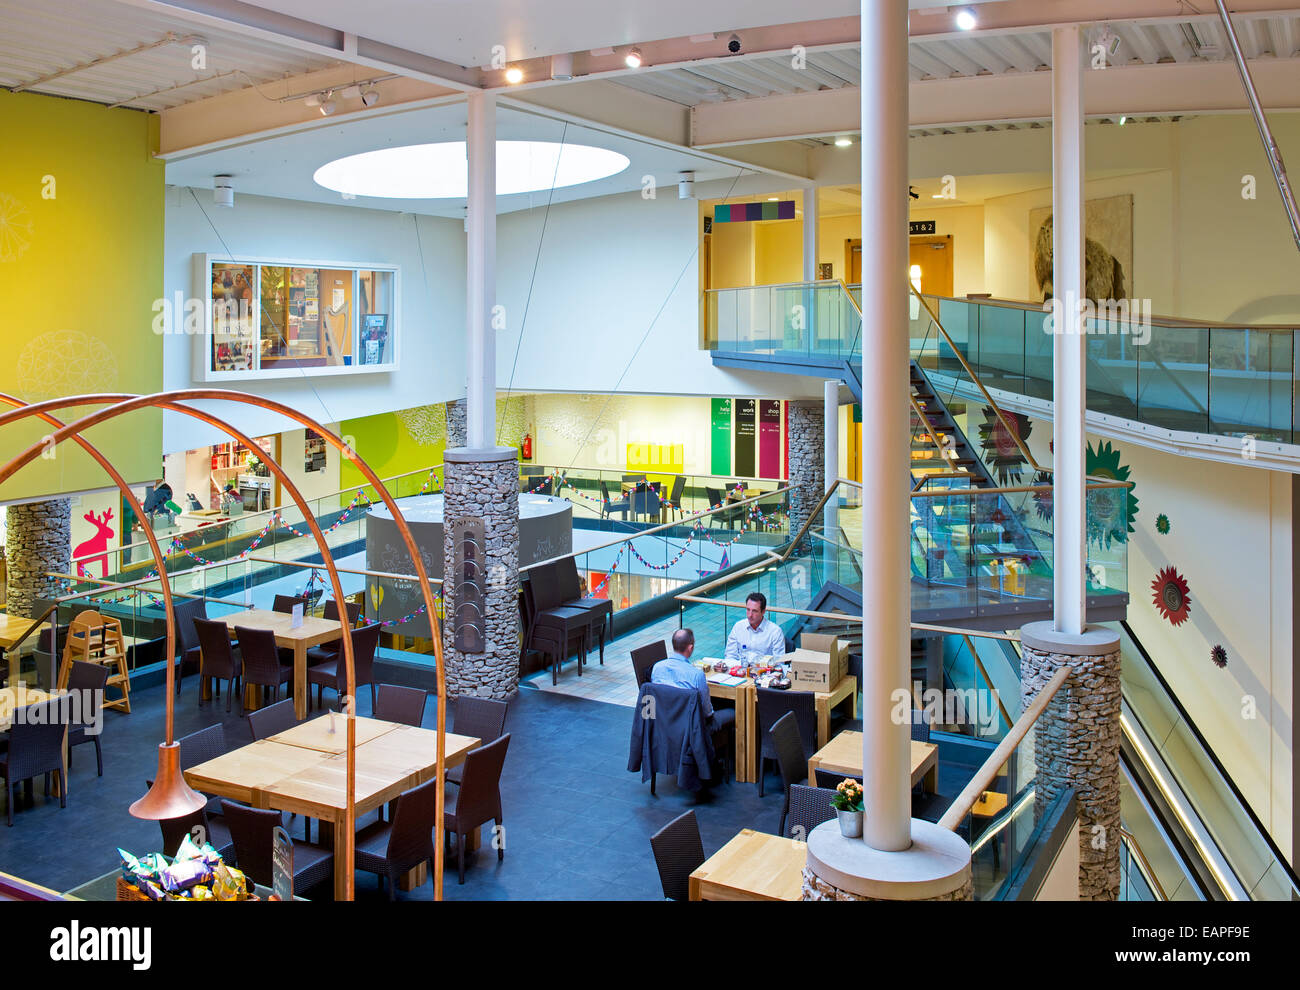 Cafe at at Rheged, Lake District attraction, near Penrith, Cumbria, England UK - Stock Image